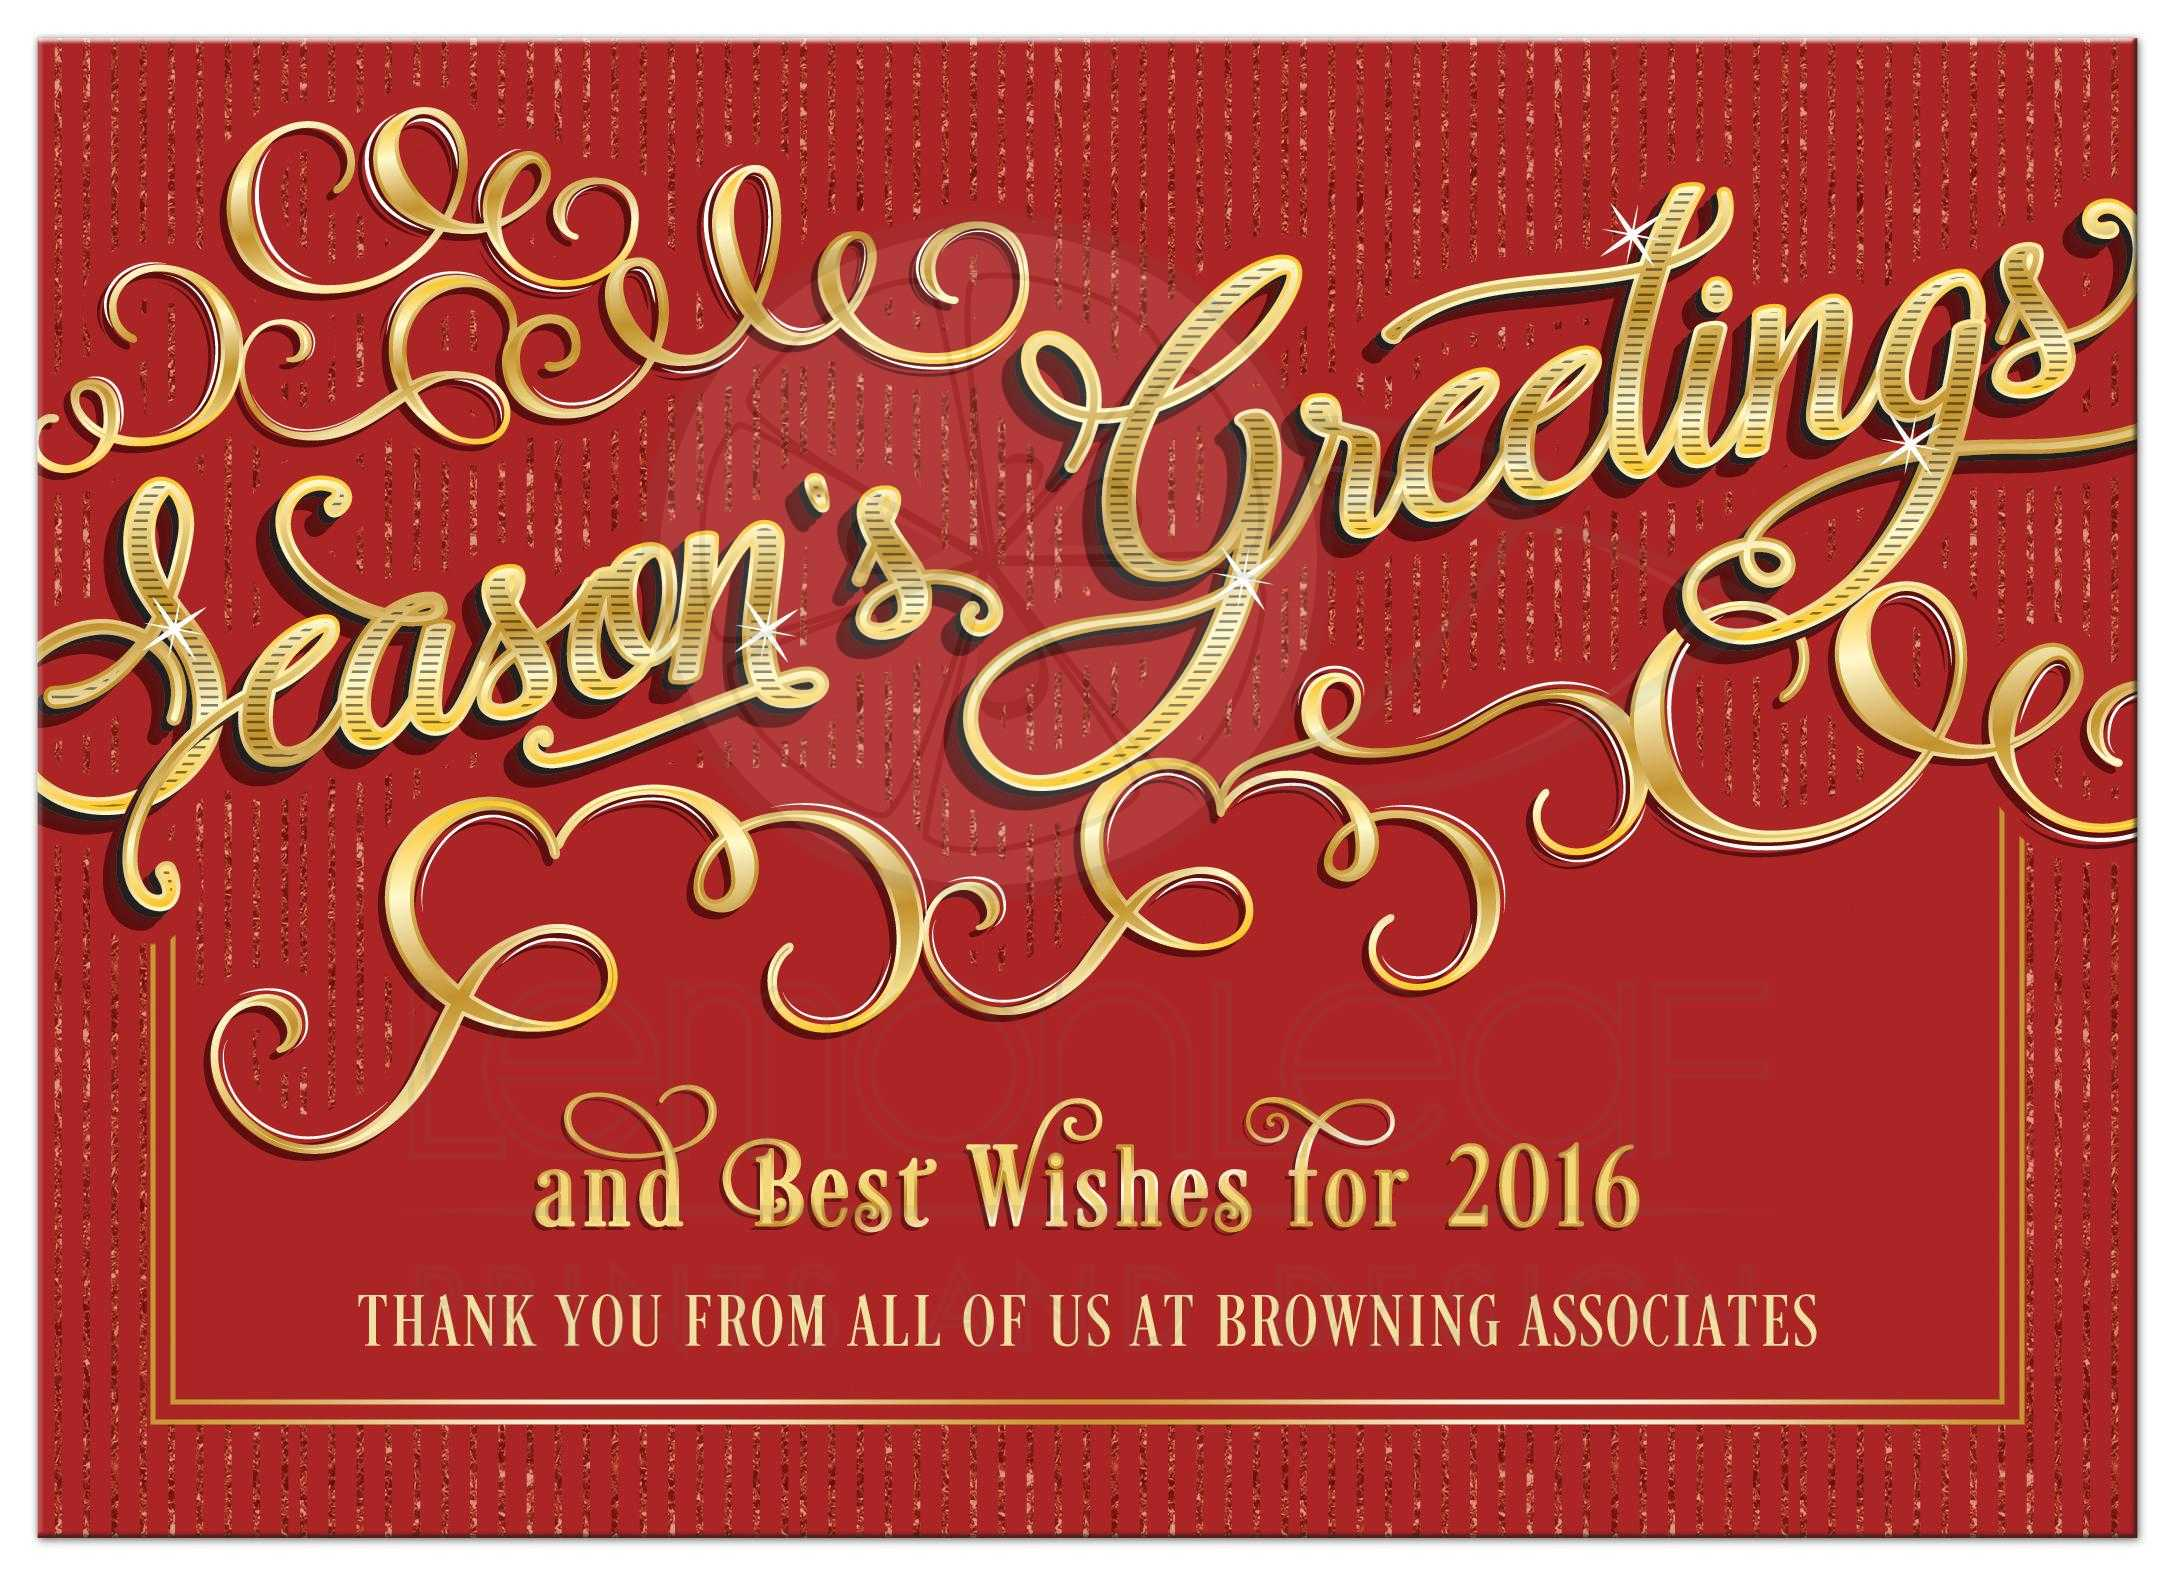 Business holiday card elegant seasons greetings red gold elegant red and gold seasons greetings business holiday greeting m4hsunfo